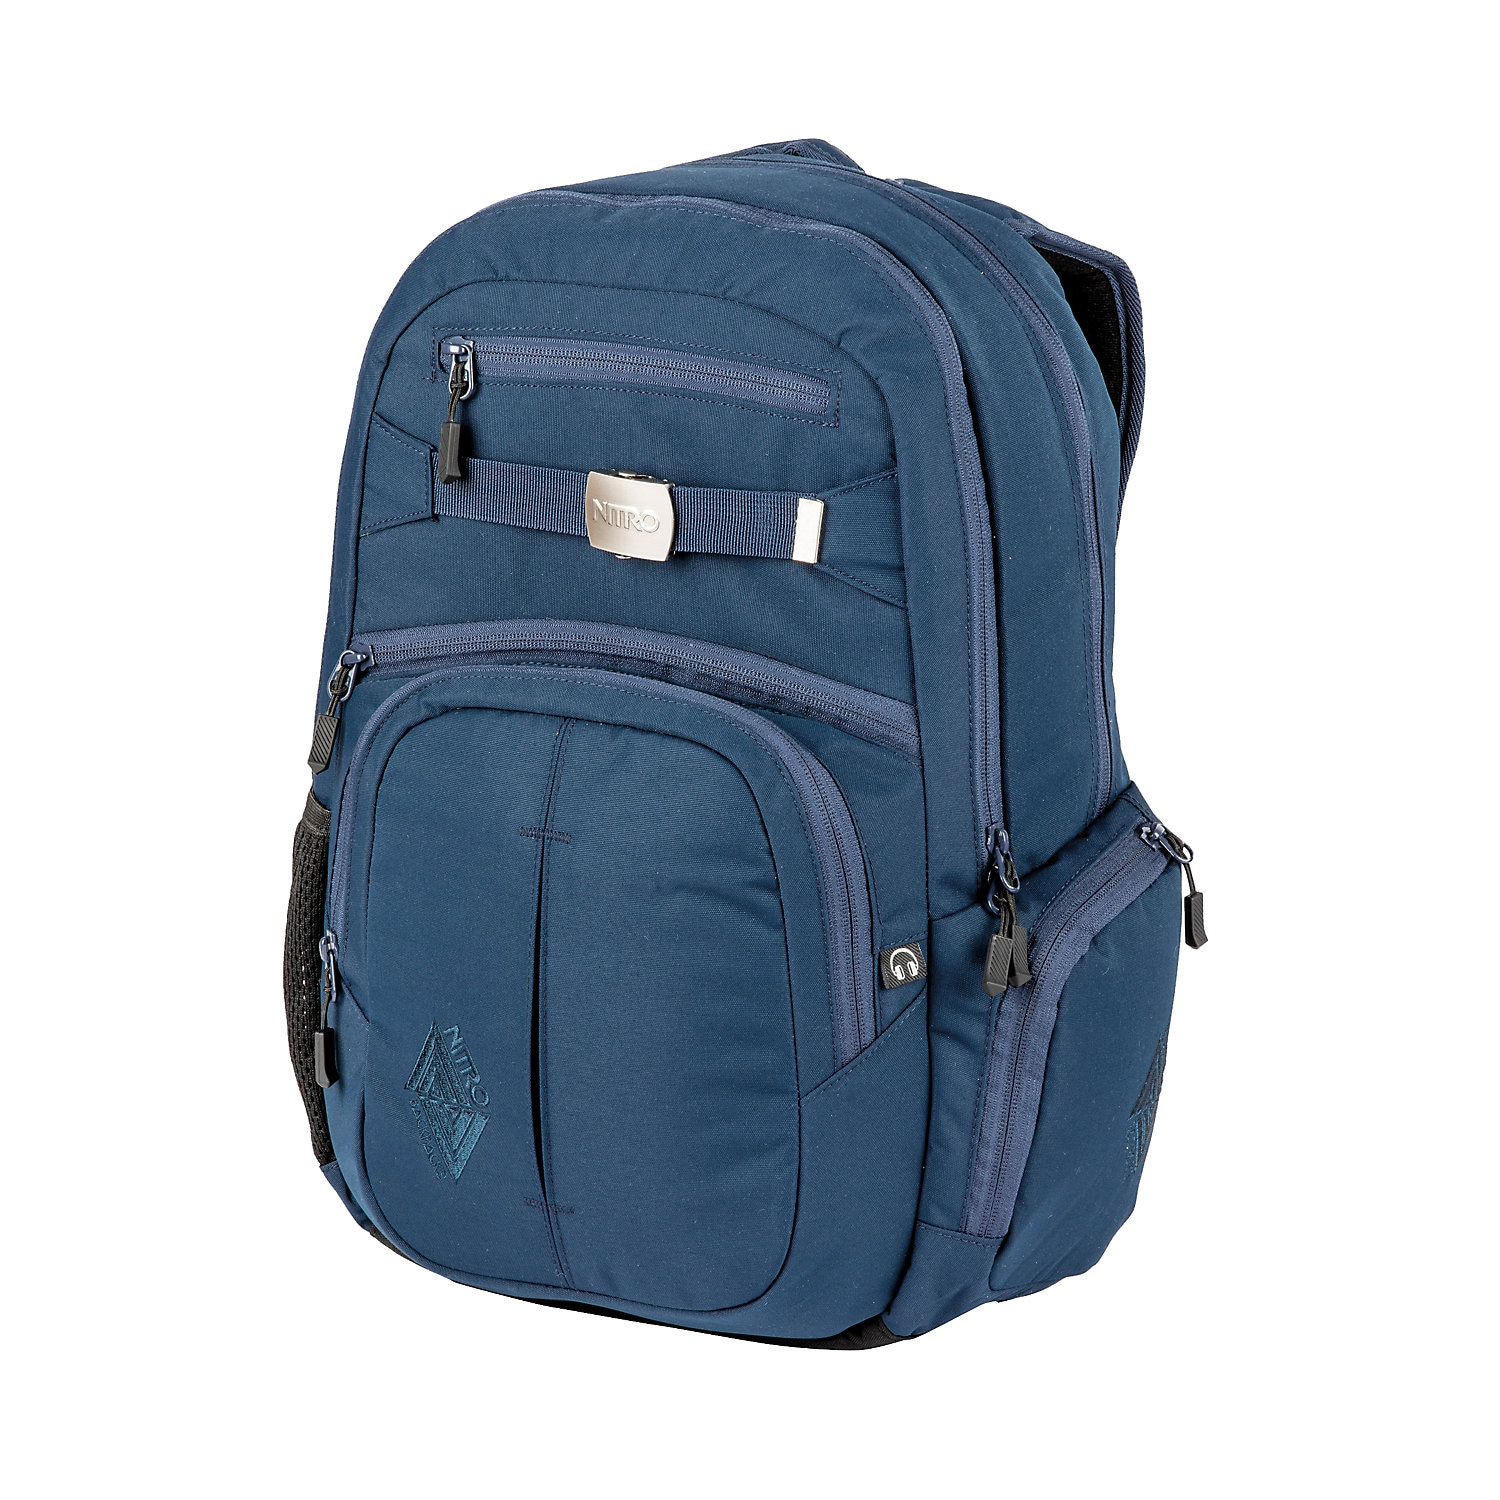 "Nitro Rucksack Hero 17"" L Daypack Collection 37 l"